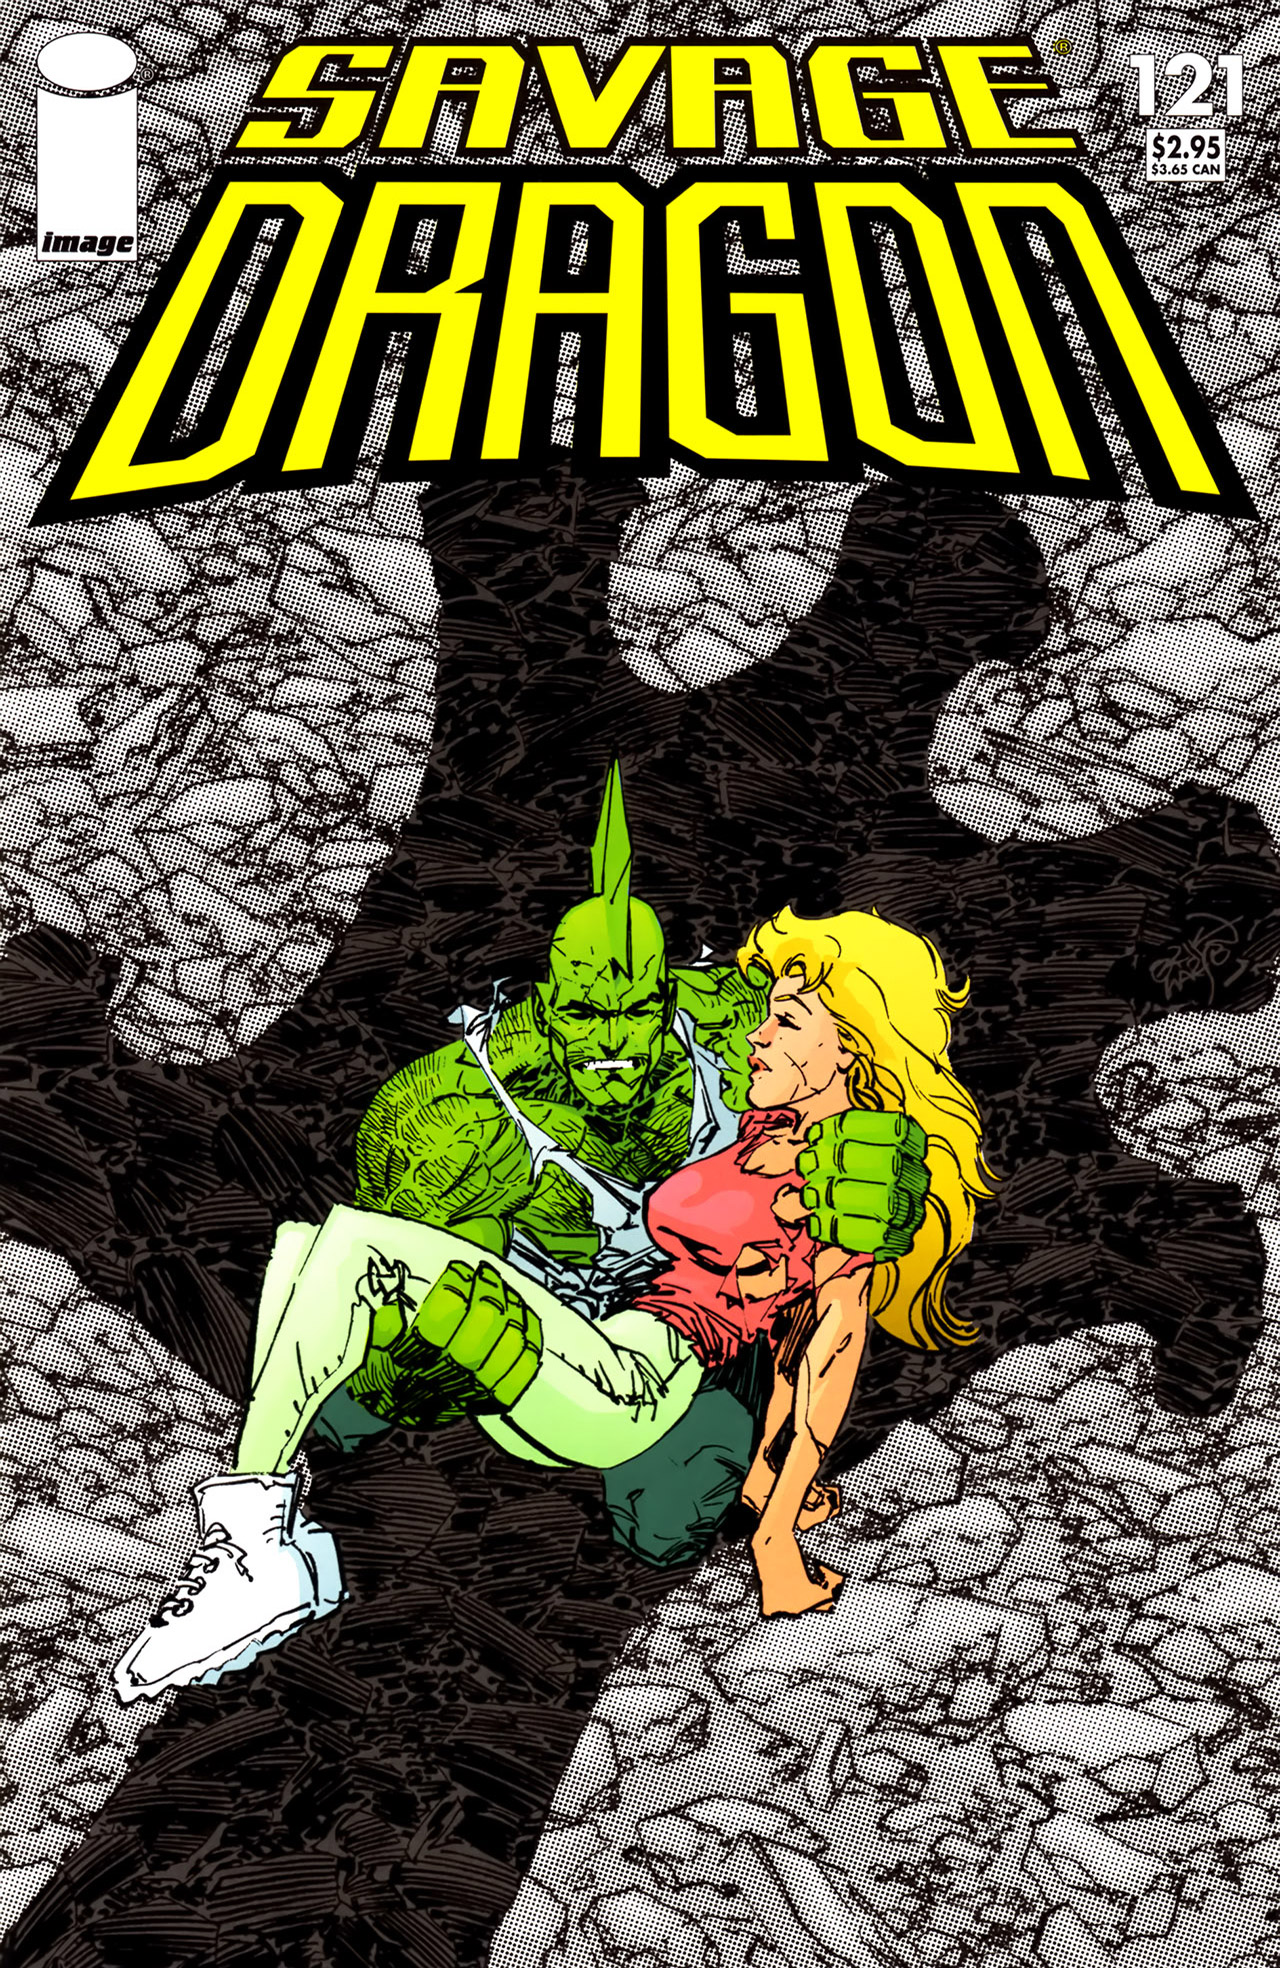 Cover Savage Dragon Vol.2 #121